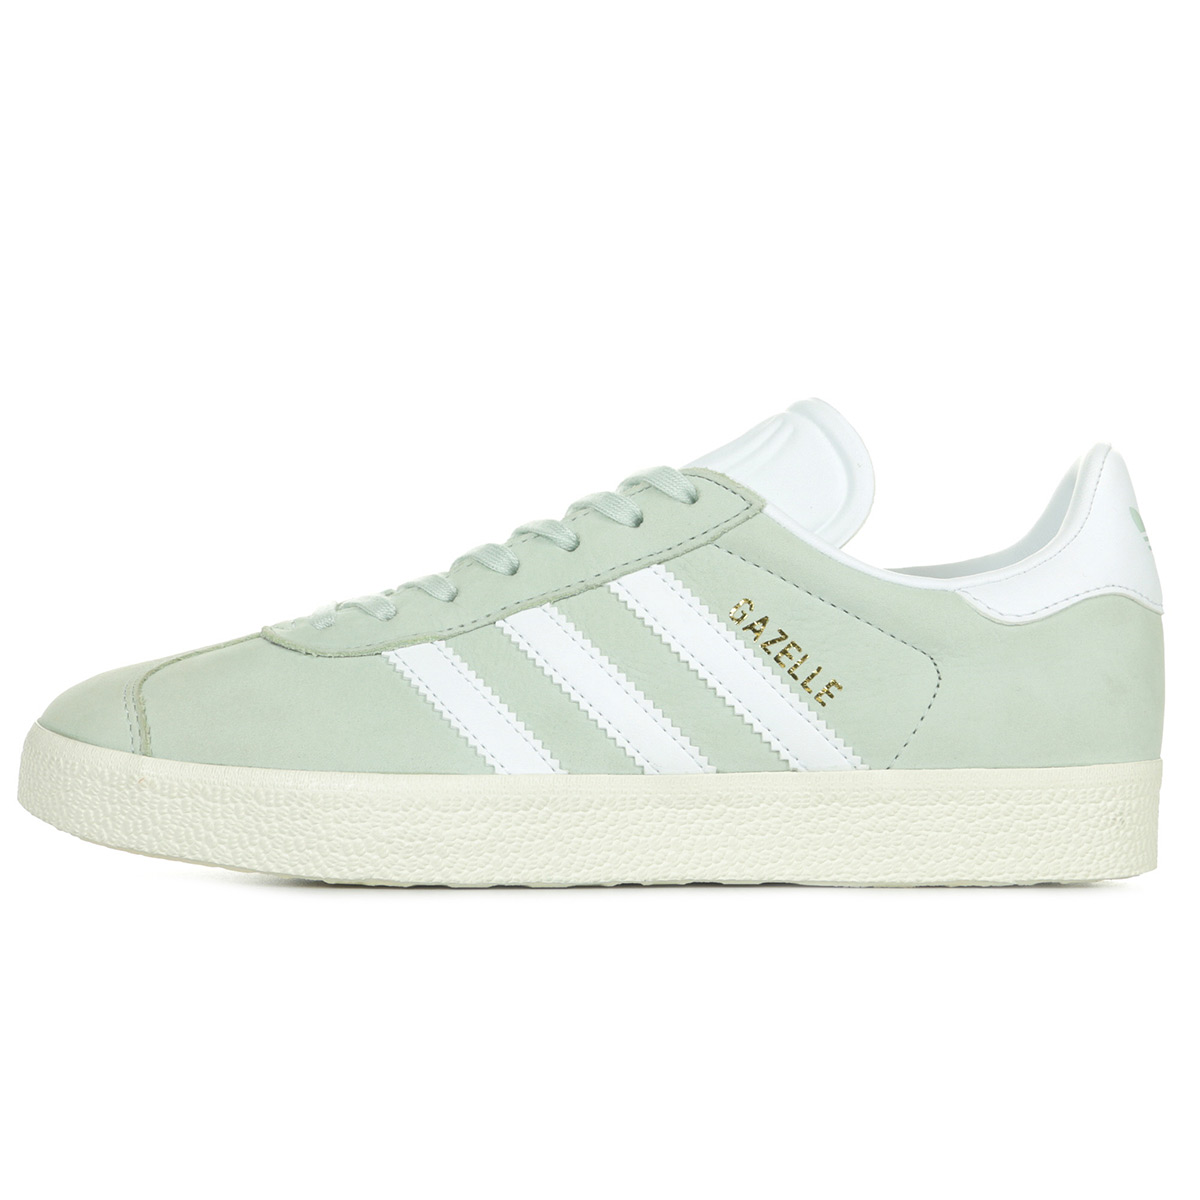 CHAUSSURES ADIDAS GAZELLE W BY9034